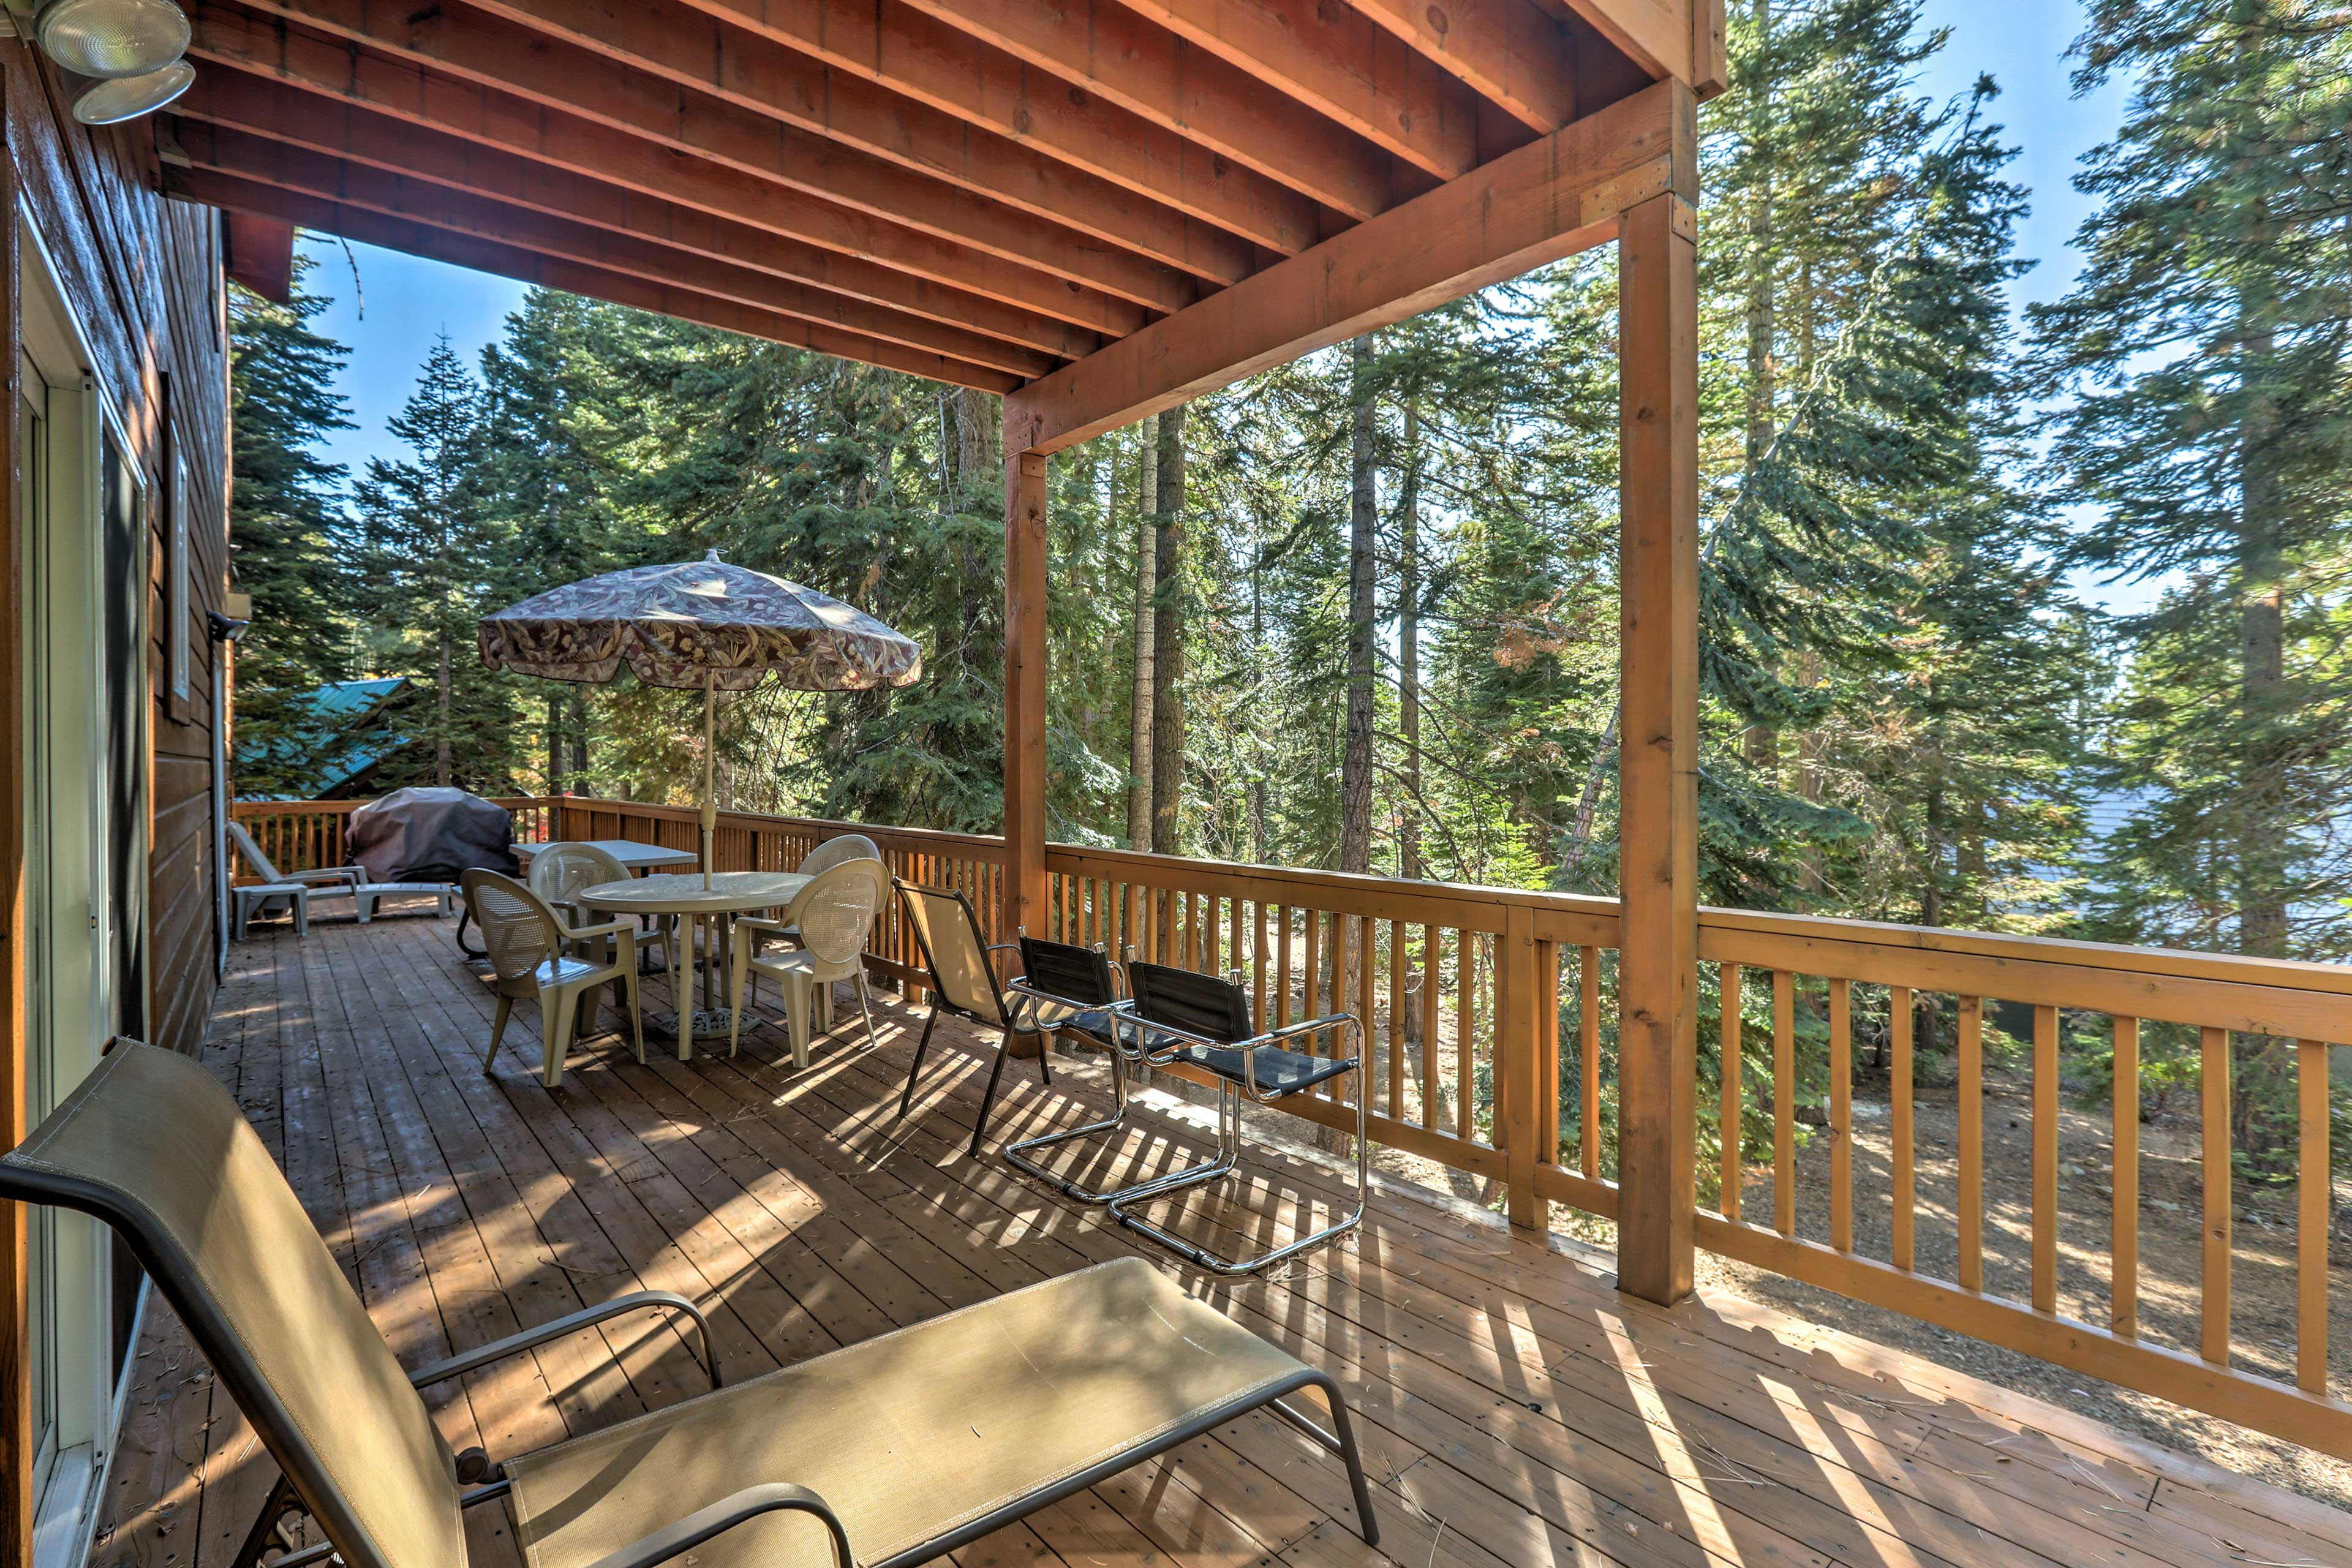 Pour a glass of wine and enjoy the scenic forested views surrounding the home.